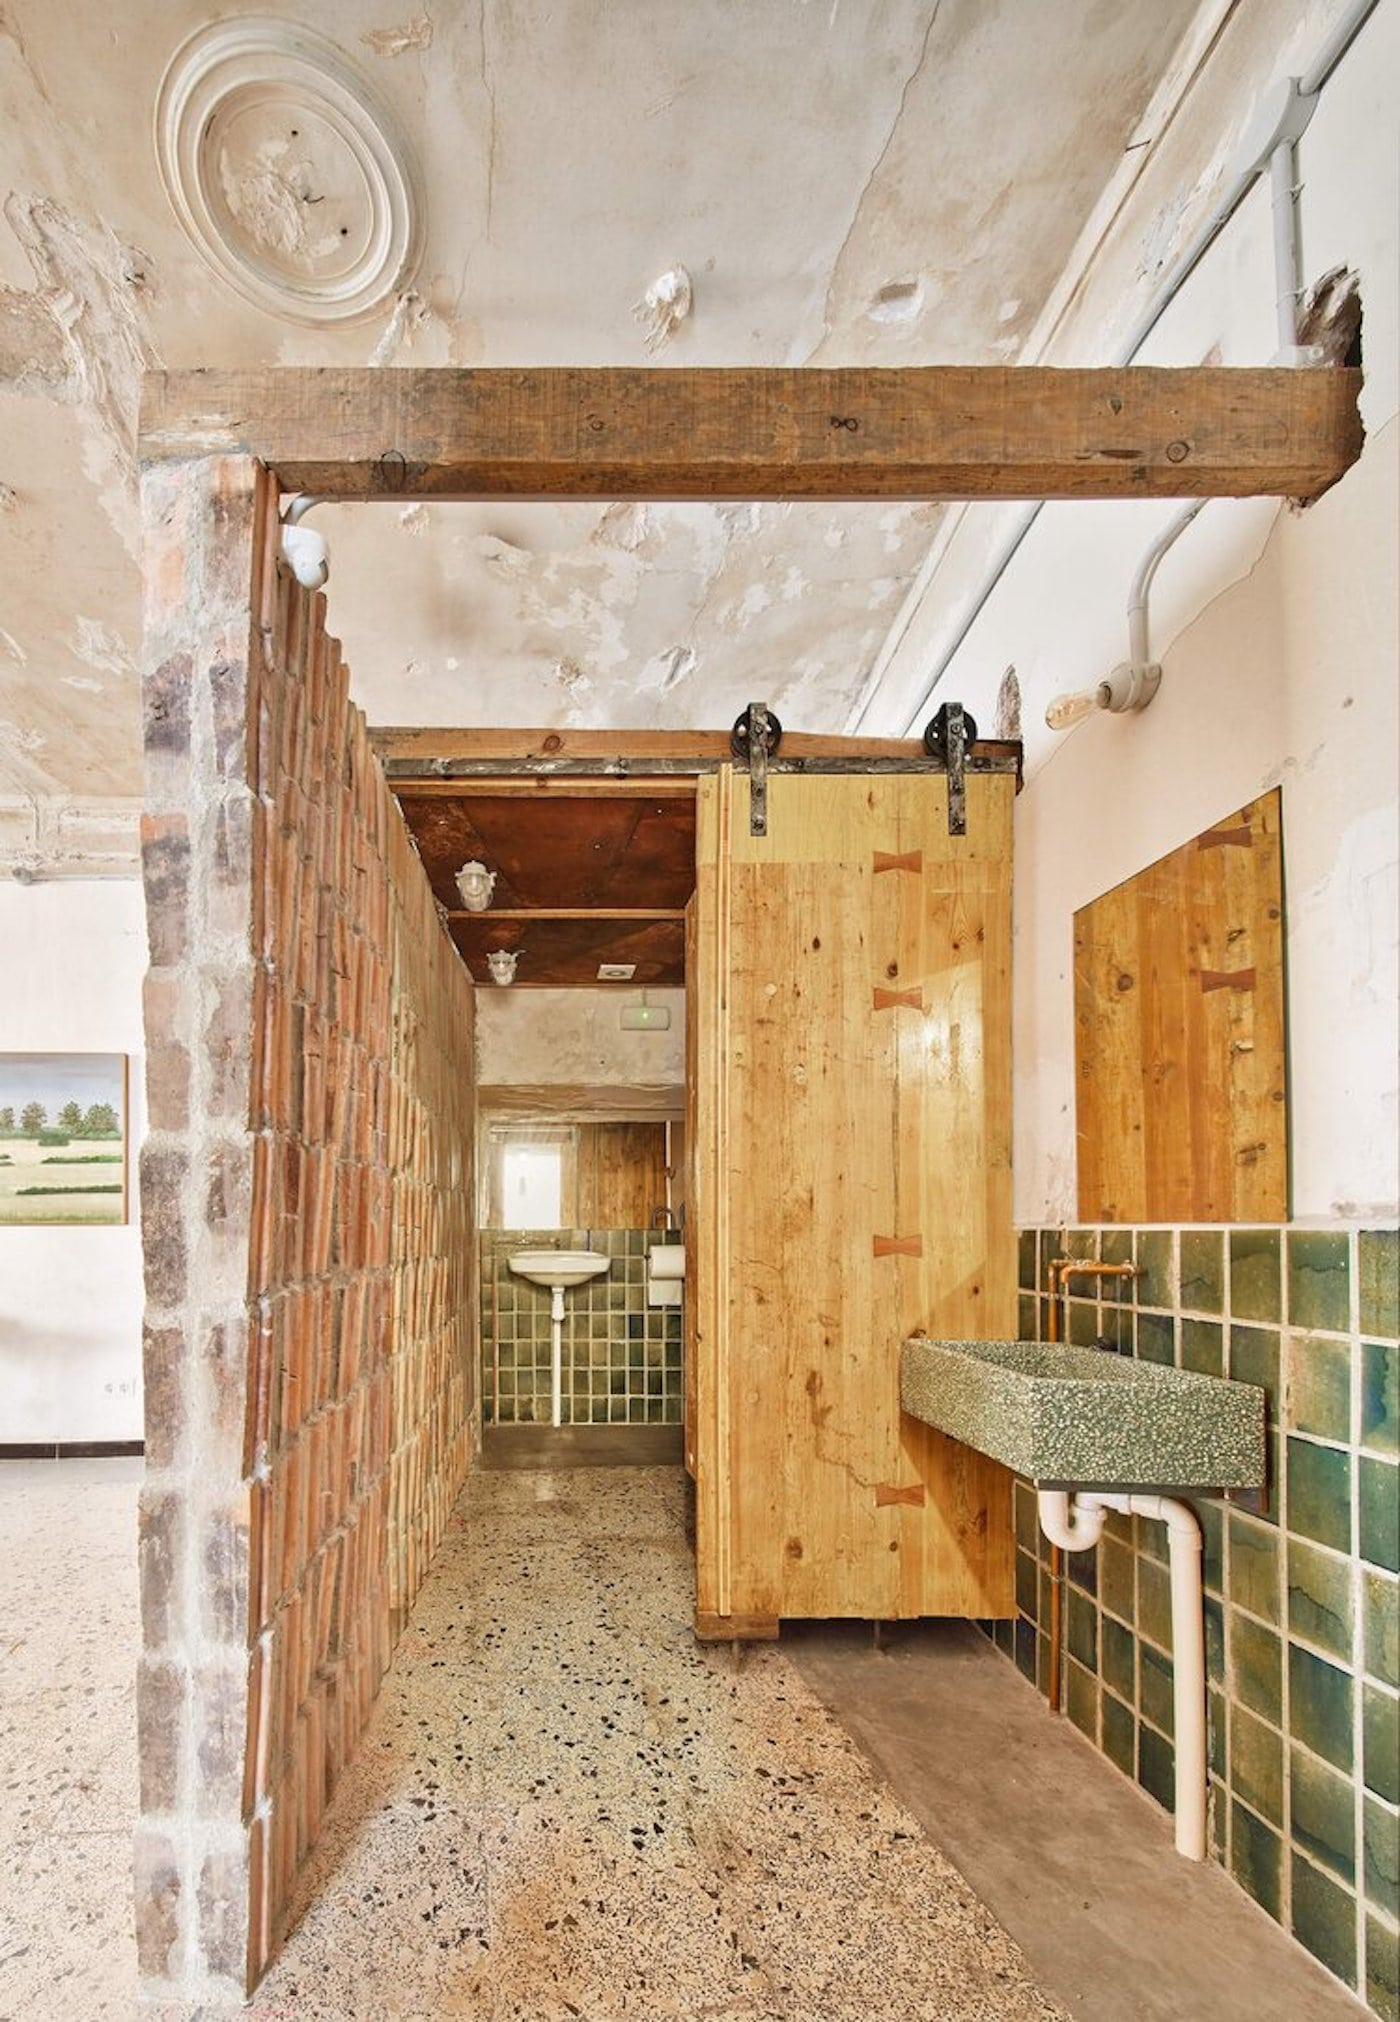 Bathroom with recycled brick walls and timber